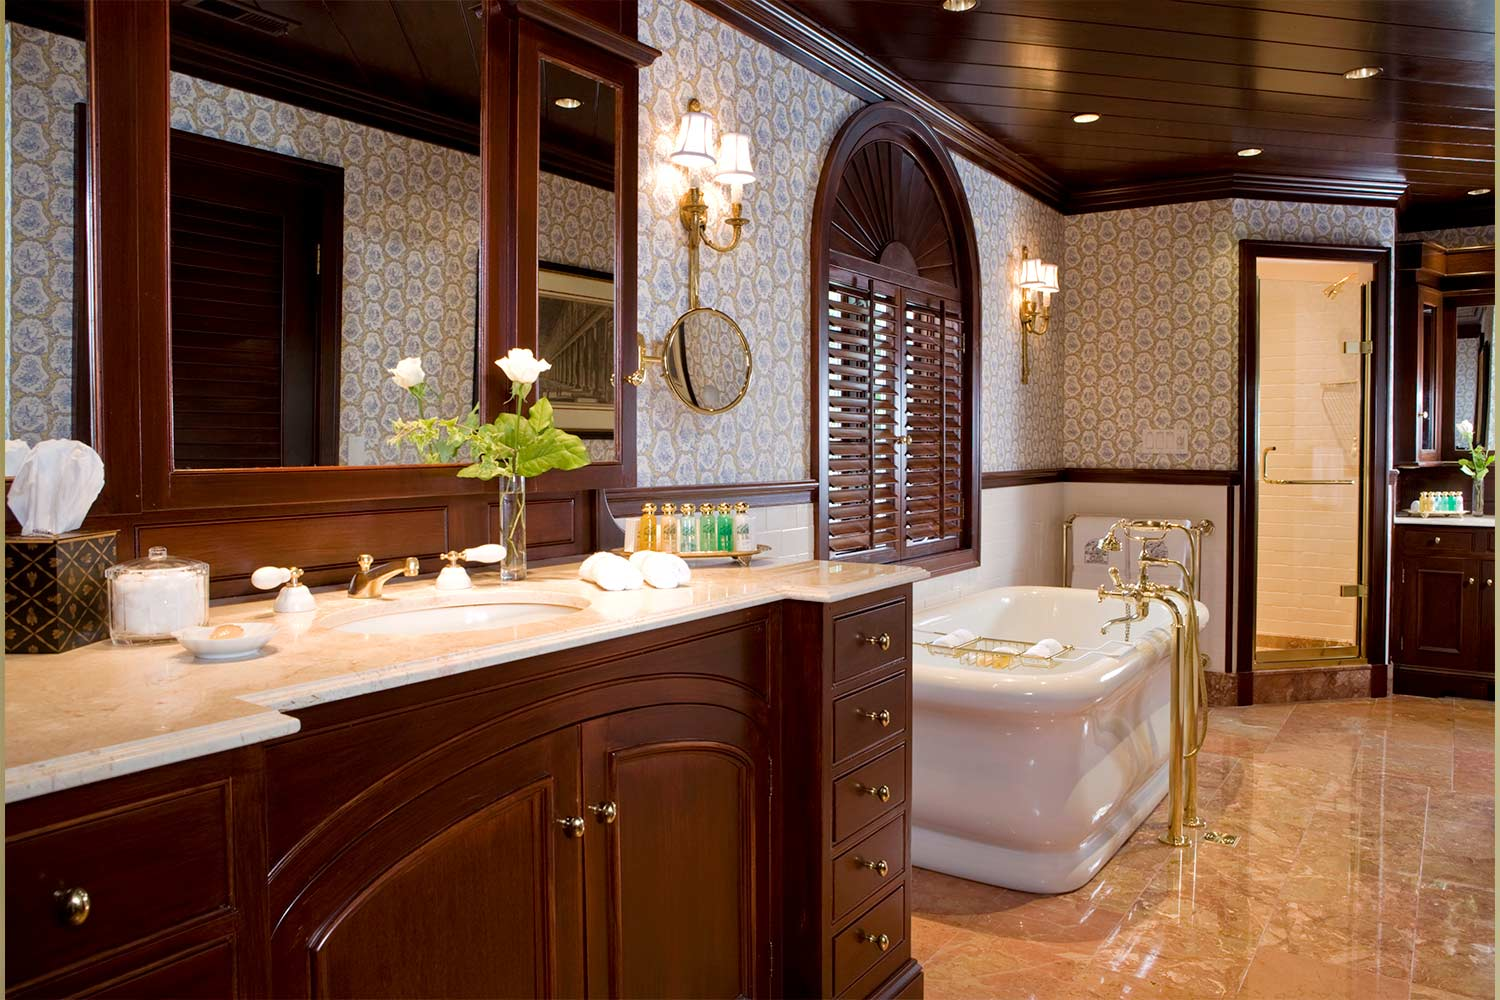 An oversized, luxurious bathroom with a large soaking tub, separate walk in shower and vanity with dark, rich woods and light countertops